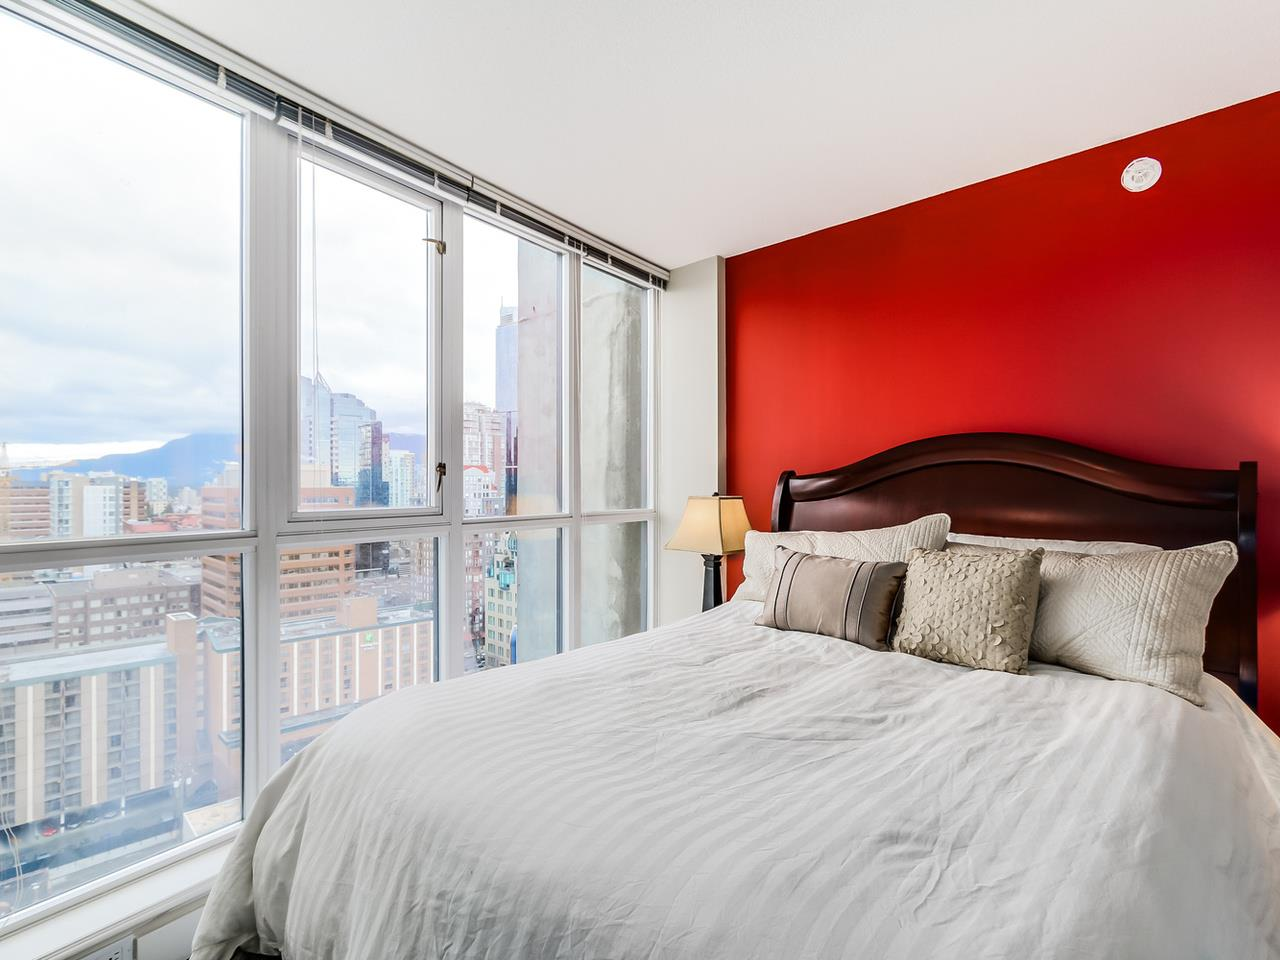 Photo 10: 2308 1155 SEYMOUR STREET in Vancouver: Downtown VW Condo for sale (Vancouver West)  : MLS® # R2026499